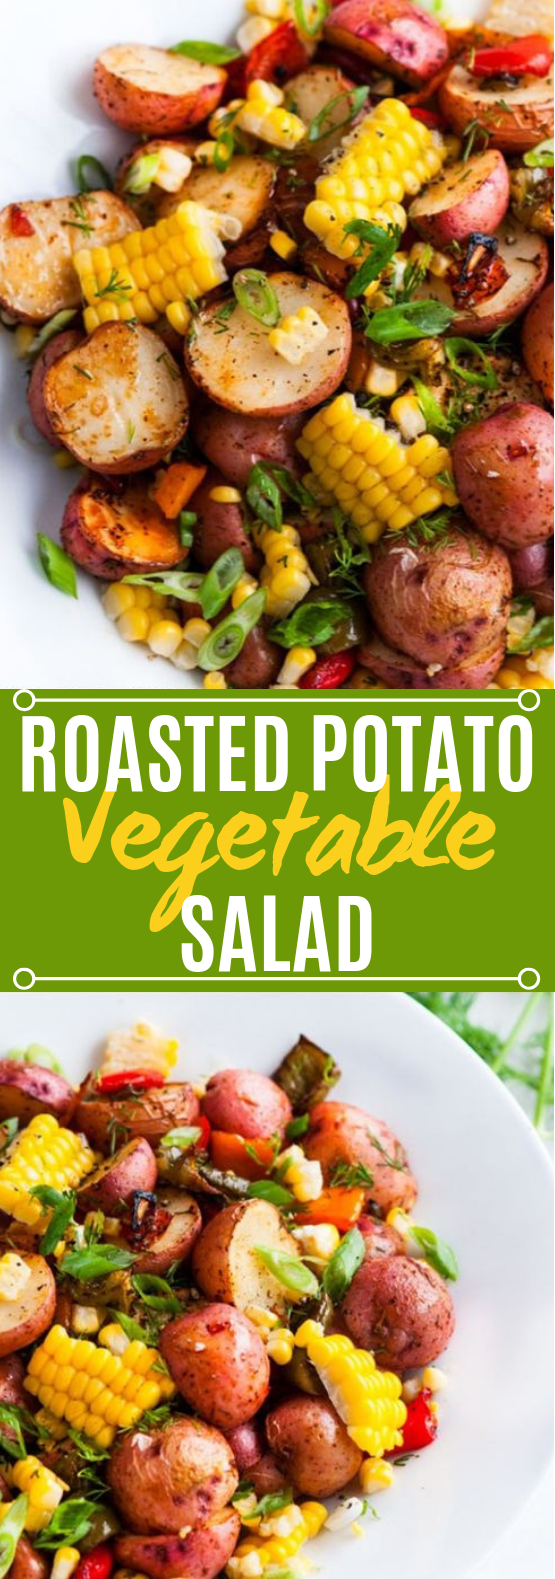 Southwest Roasted Potato Salad #vegan #salad